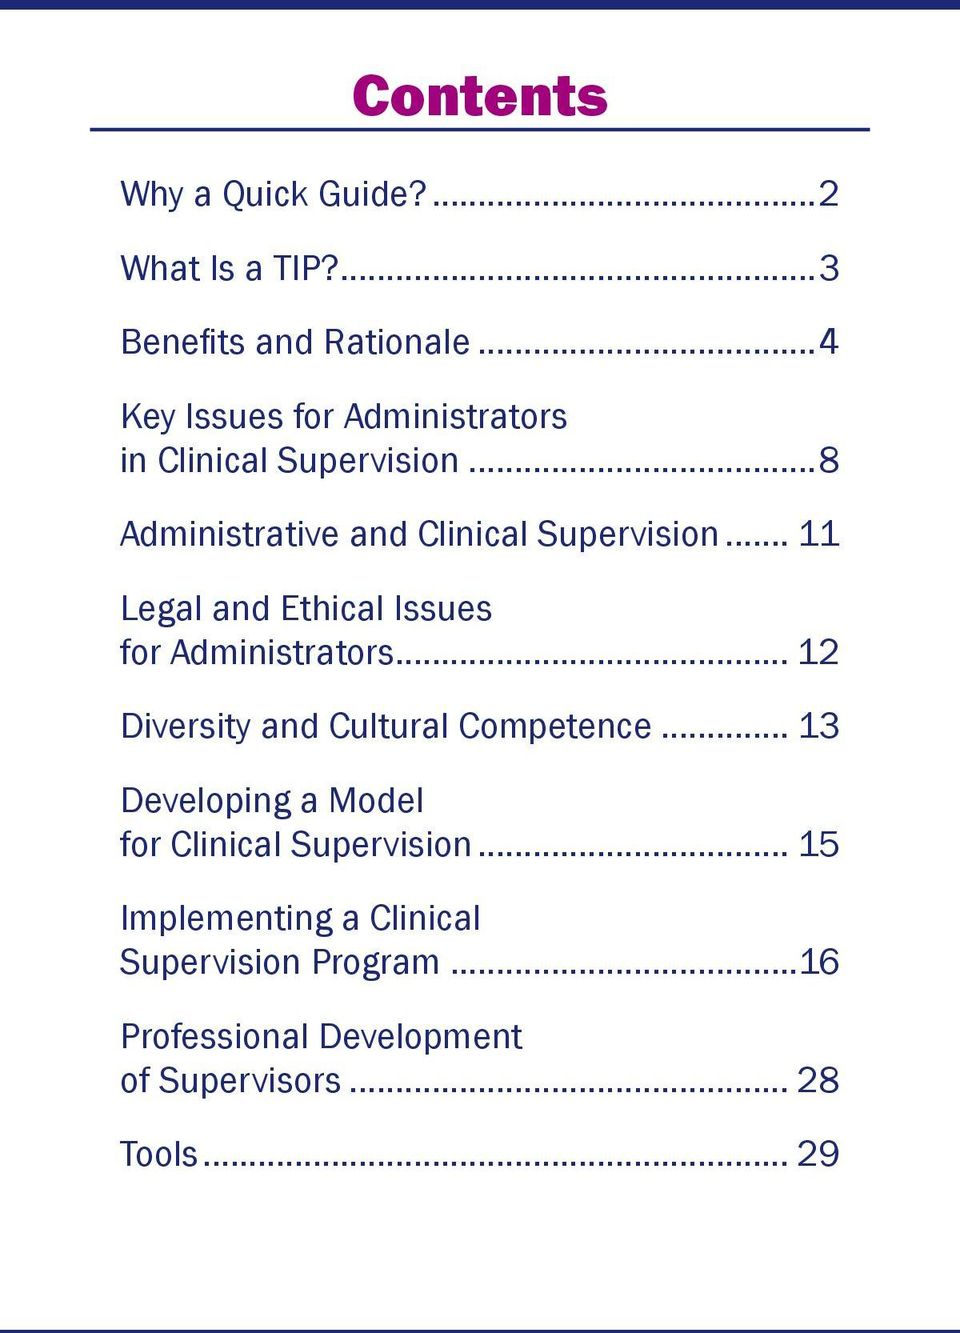 .. 11 Legal and Ethical Issues for Administrators... 12 Diversity and Cultural Competence.